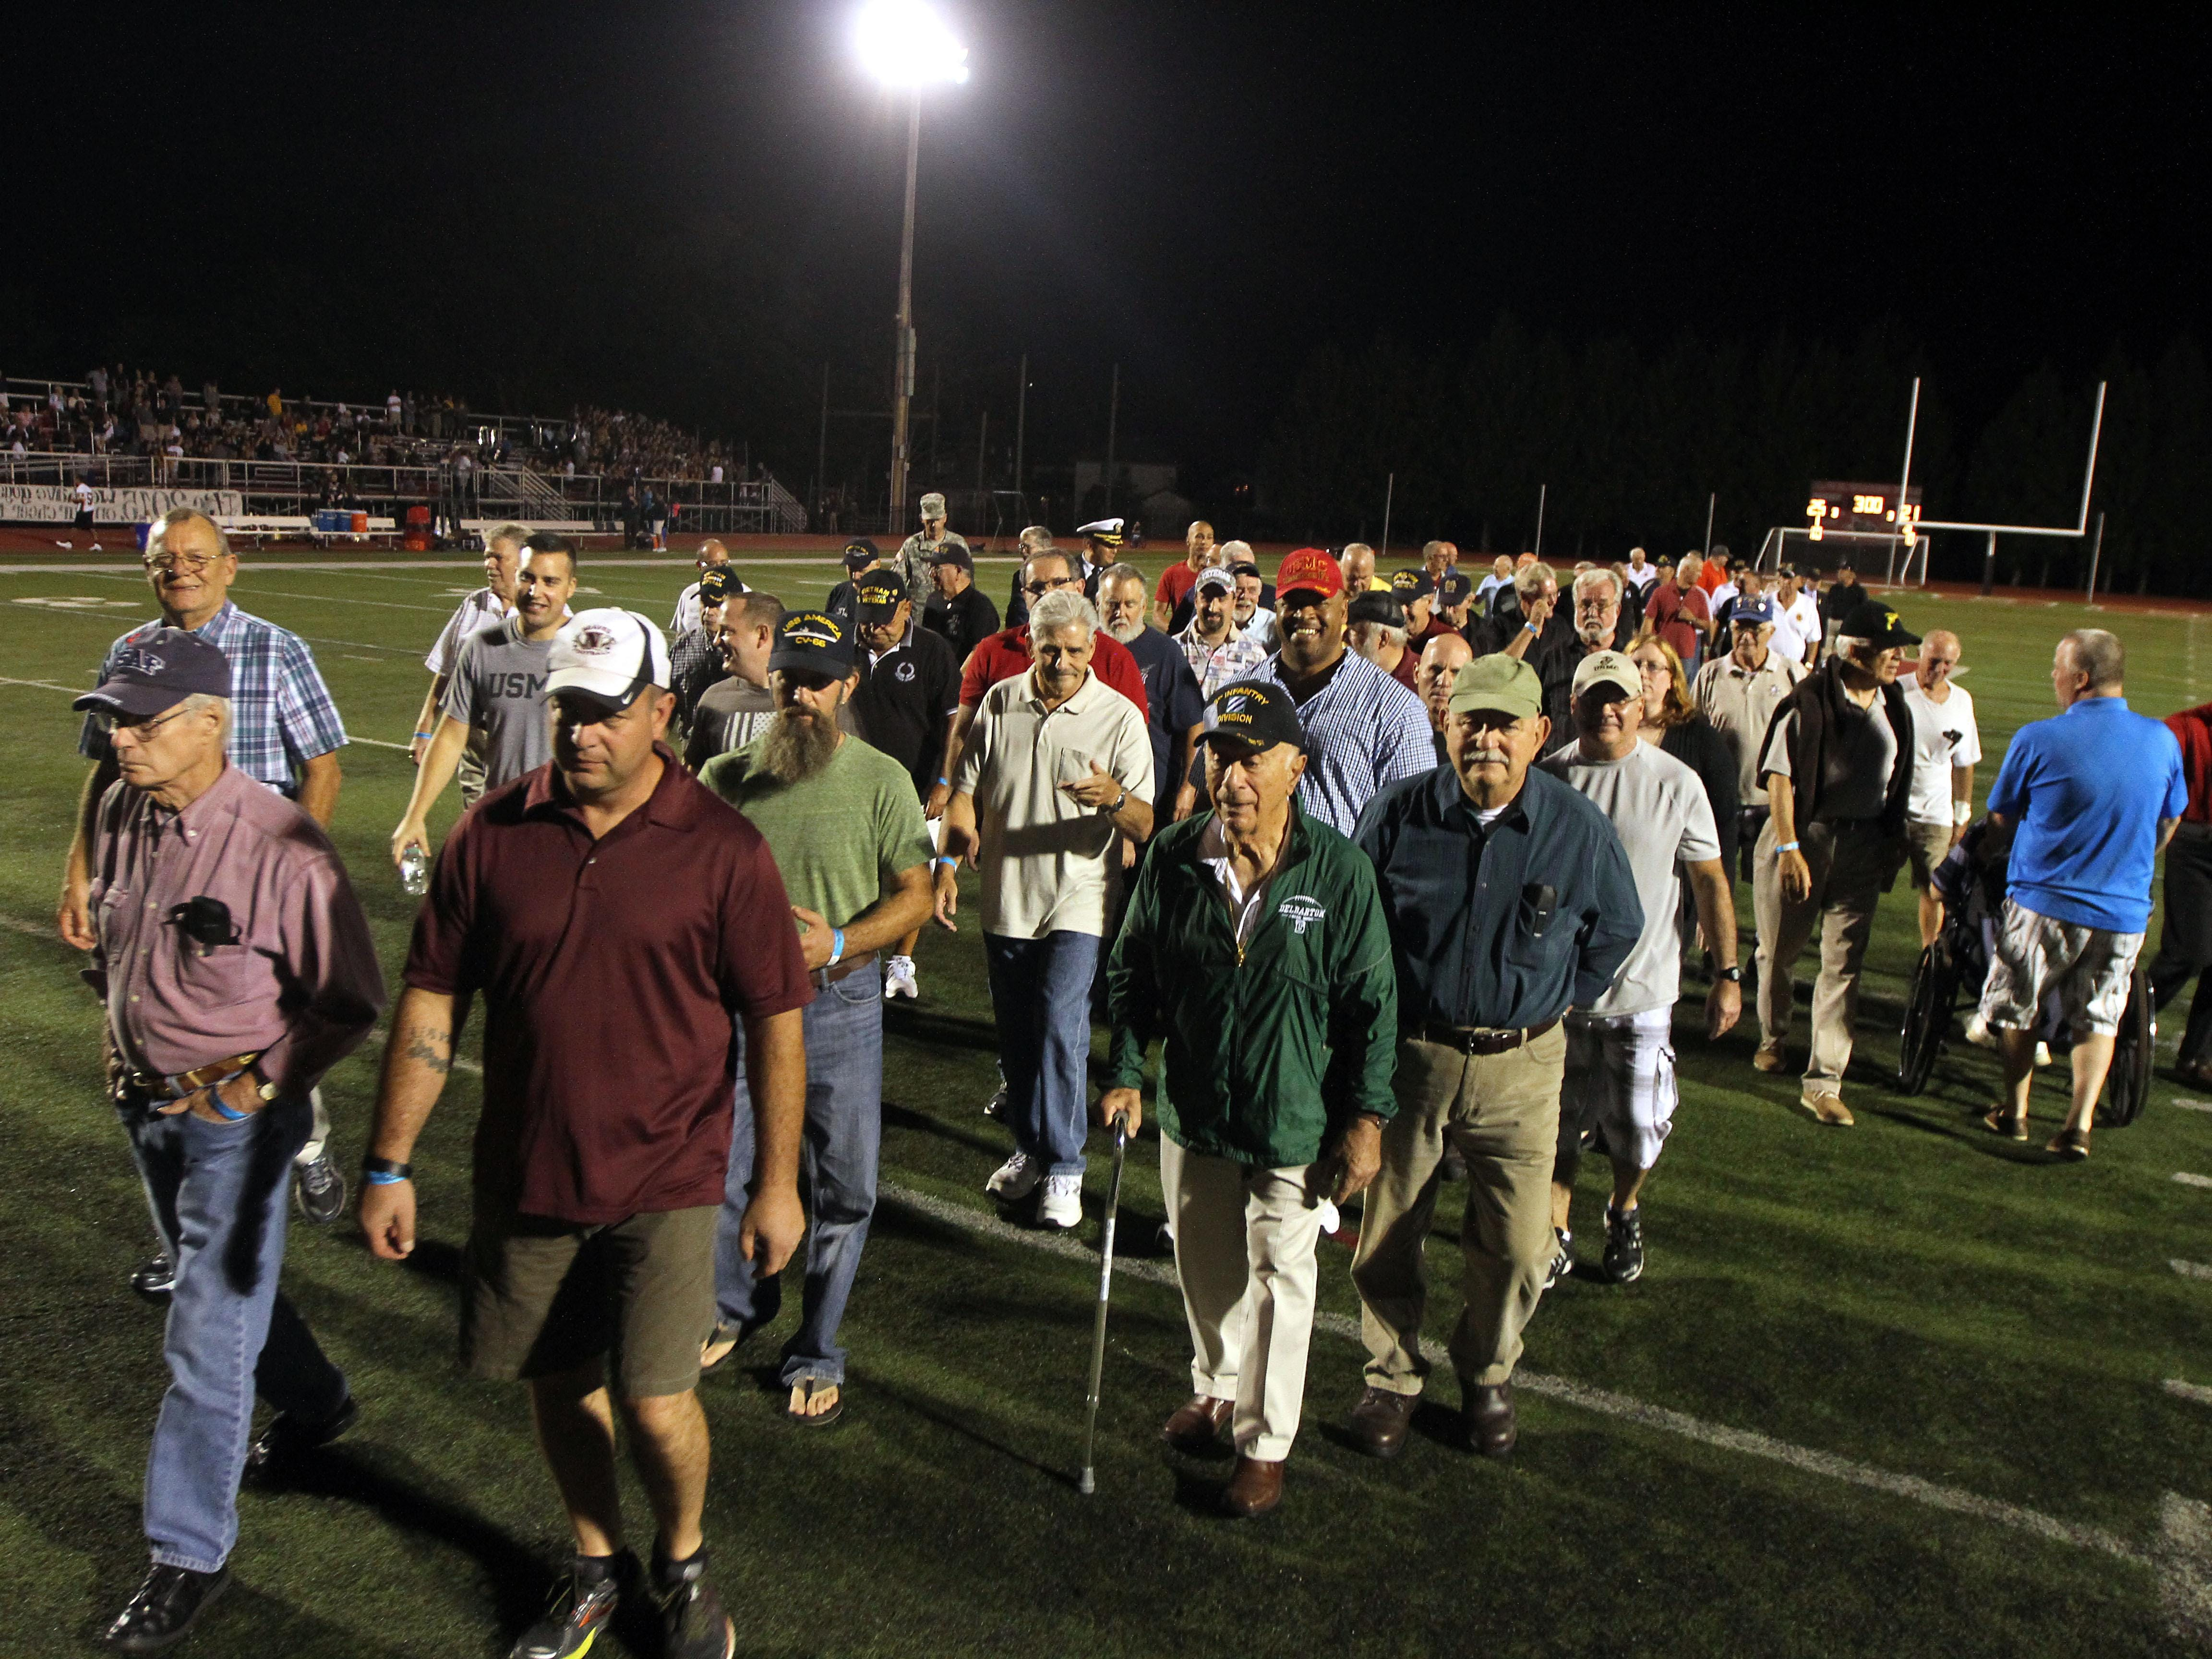 Boonton High School honored its graduate military veterans during halftime of the Boonton High School football game Friday night. The vets, some of whom are still residents, others coming back from out of town, also enjoyed a tailgate party prior to the game and ceremony. September 18, 2015, Boonton, NJ.